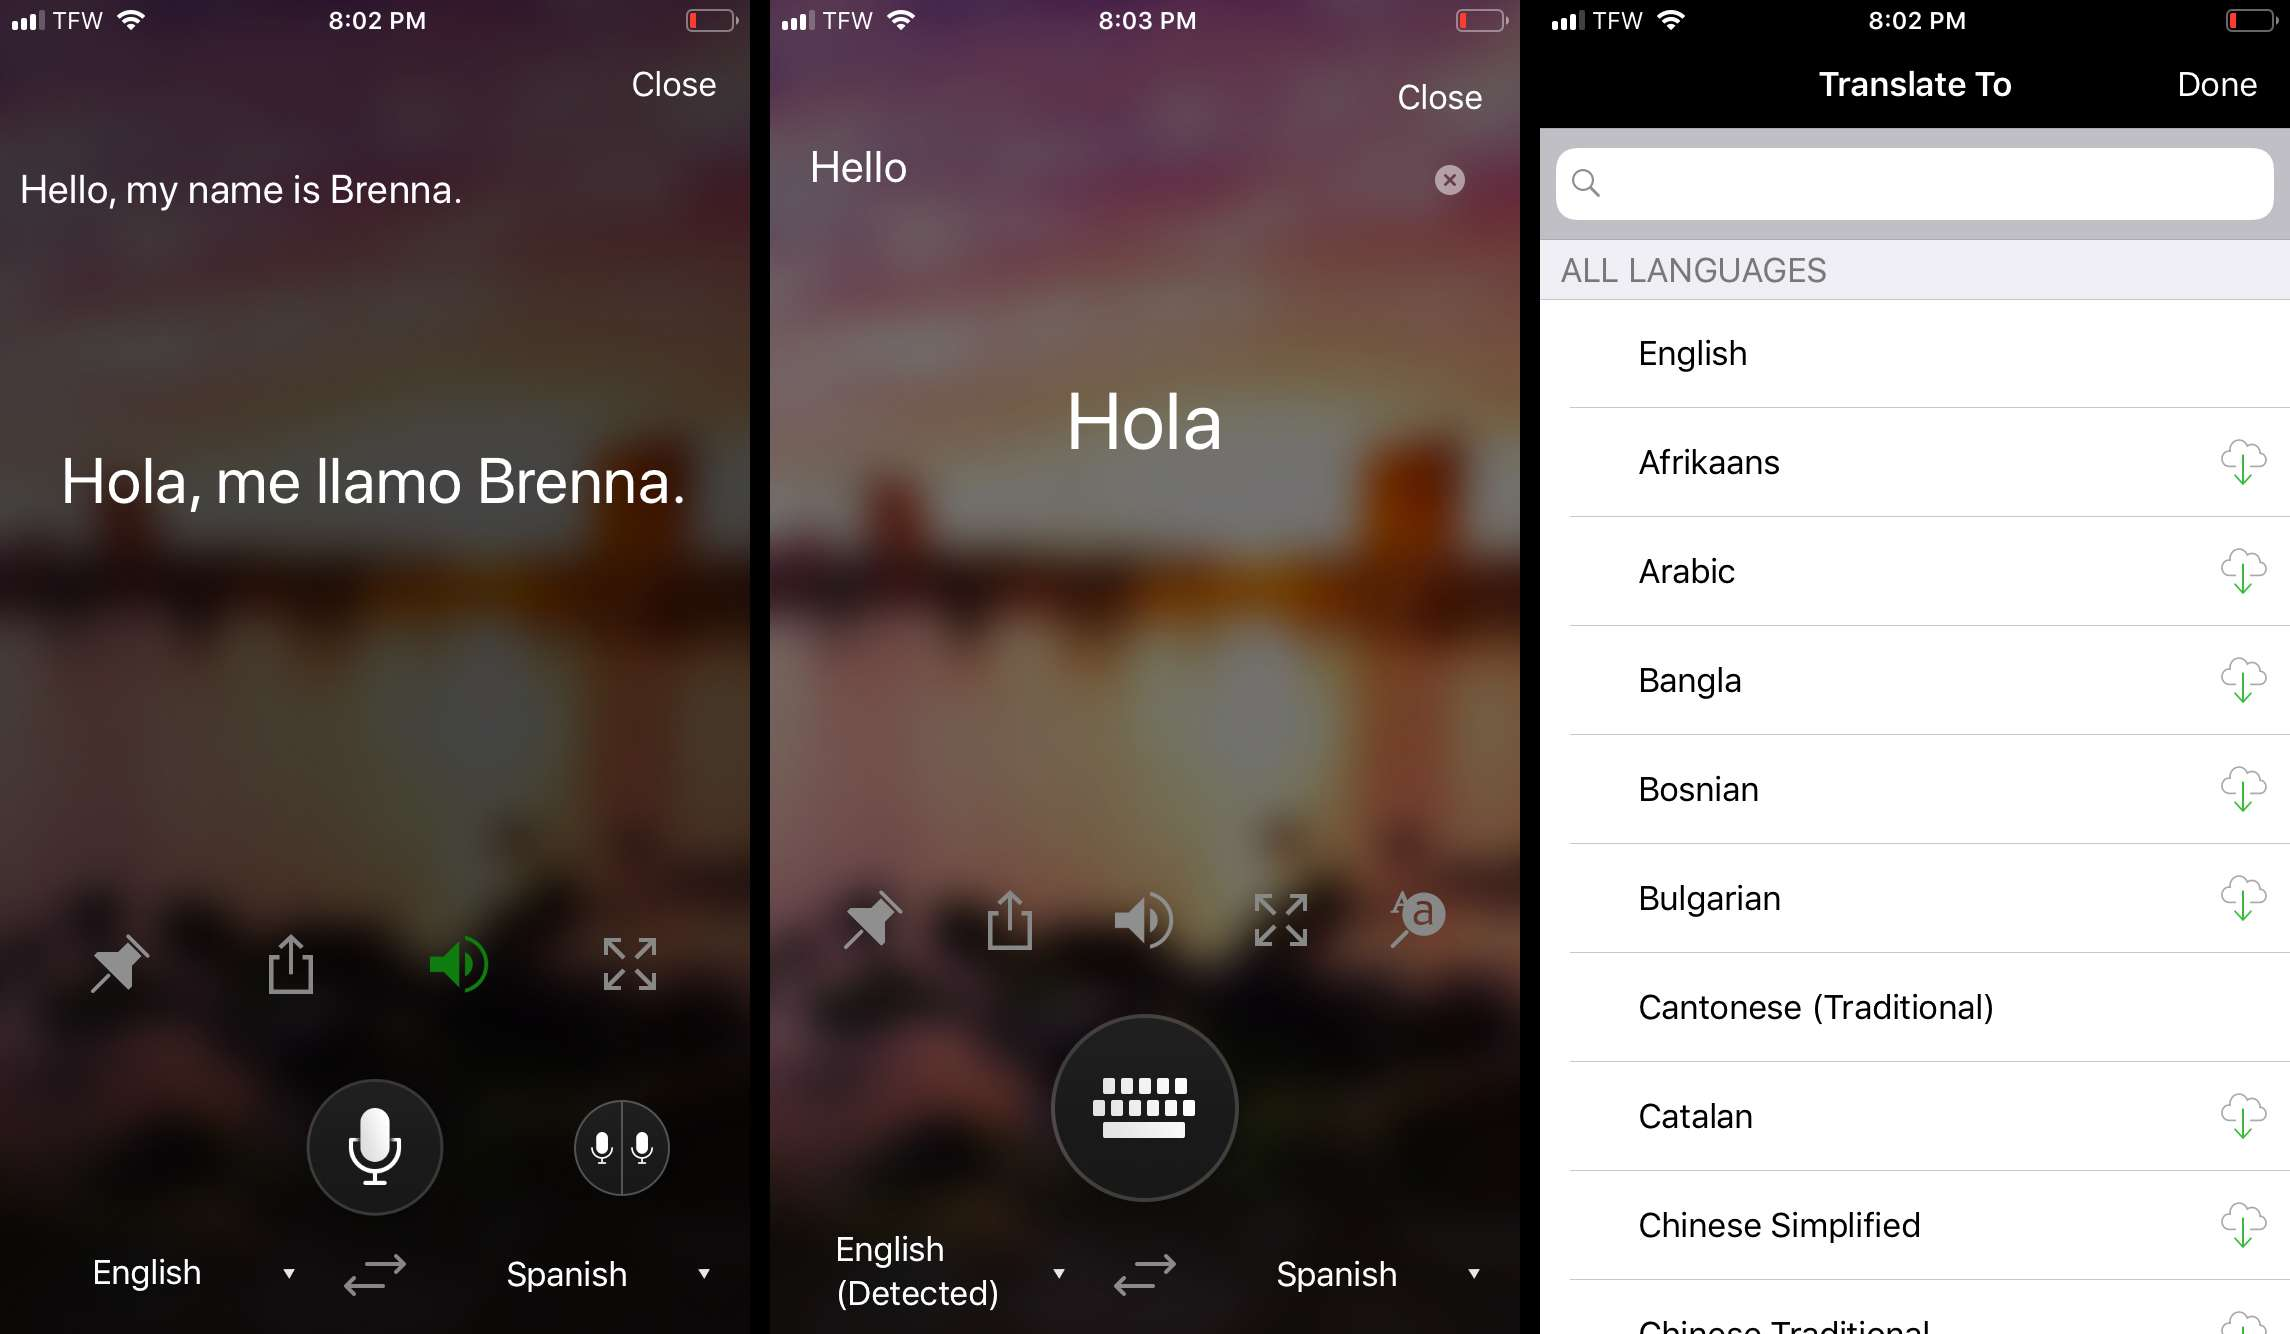 Using Microsoft translator to translate text and voice